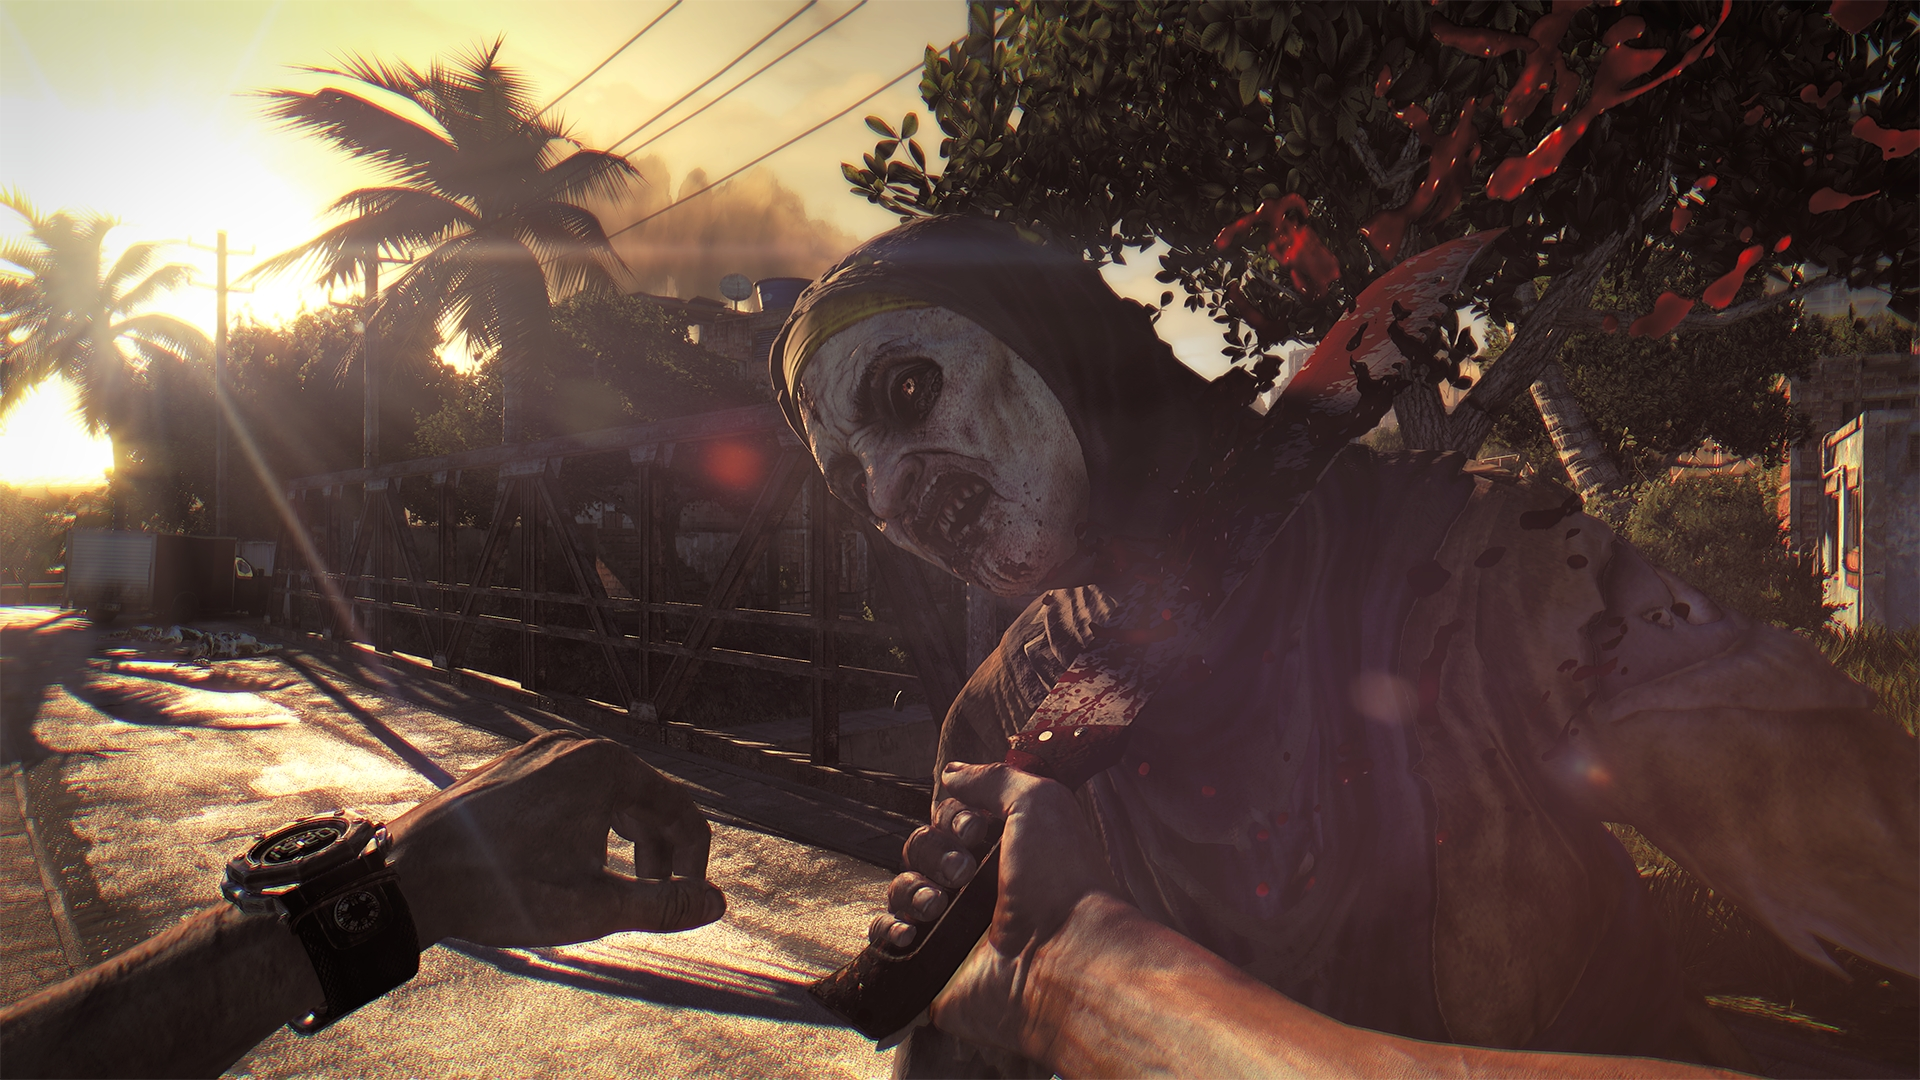 Interactive Entertainment And Techland Have Released A New Trailer For  Their Upcoming Zombie Game, Dying Light, Showing Off The Gameu0027s Next Gen  Lighting ...